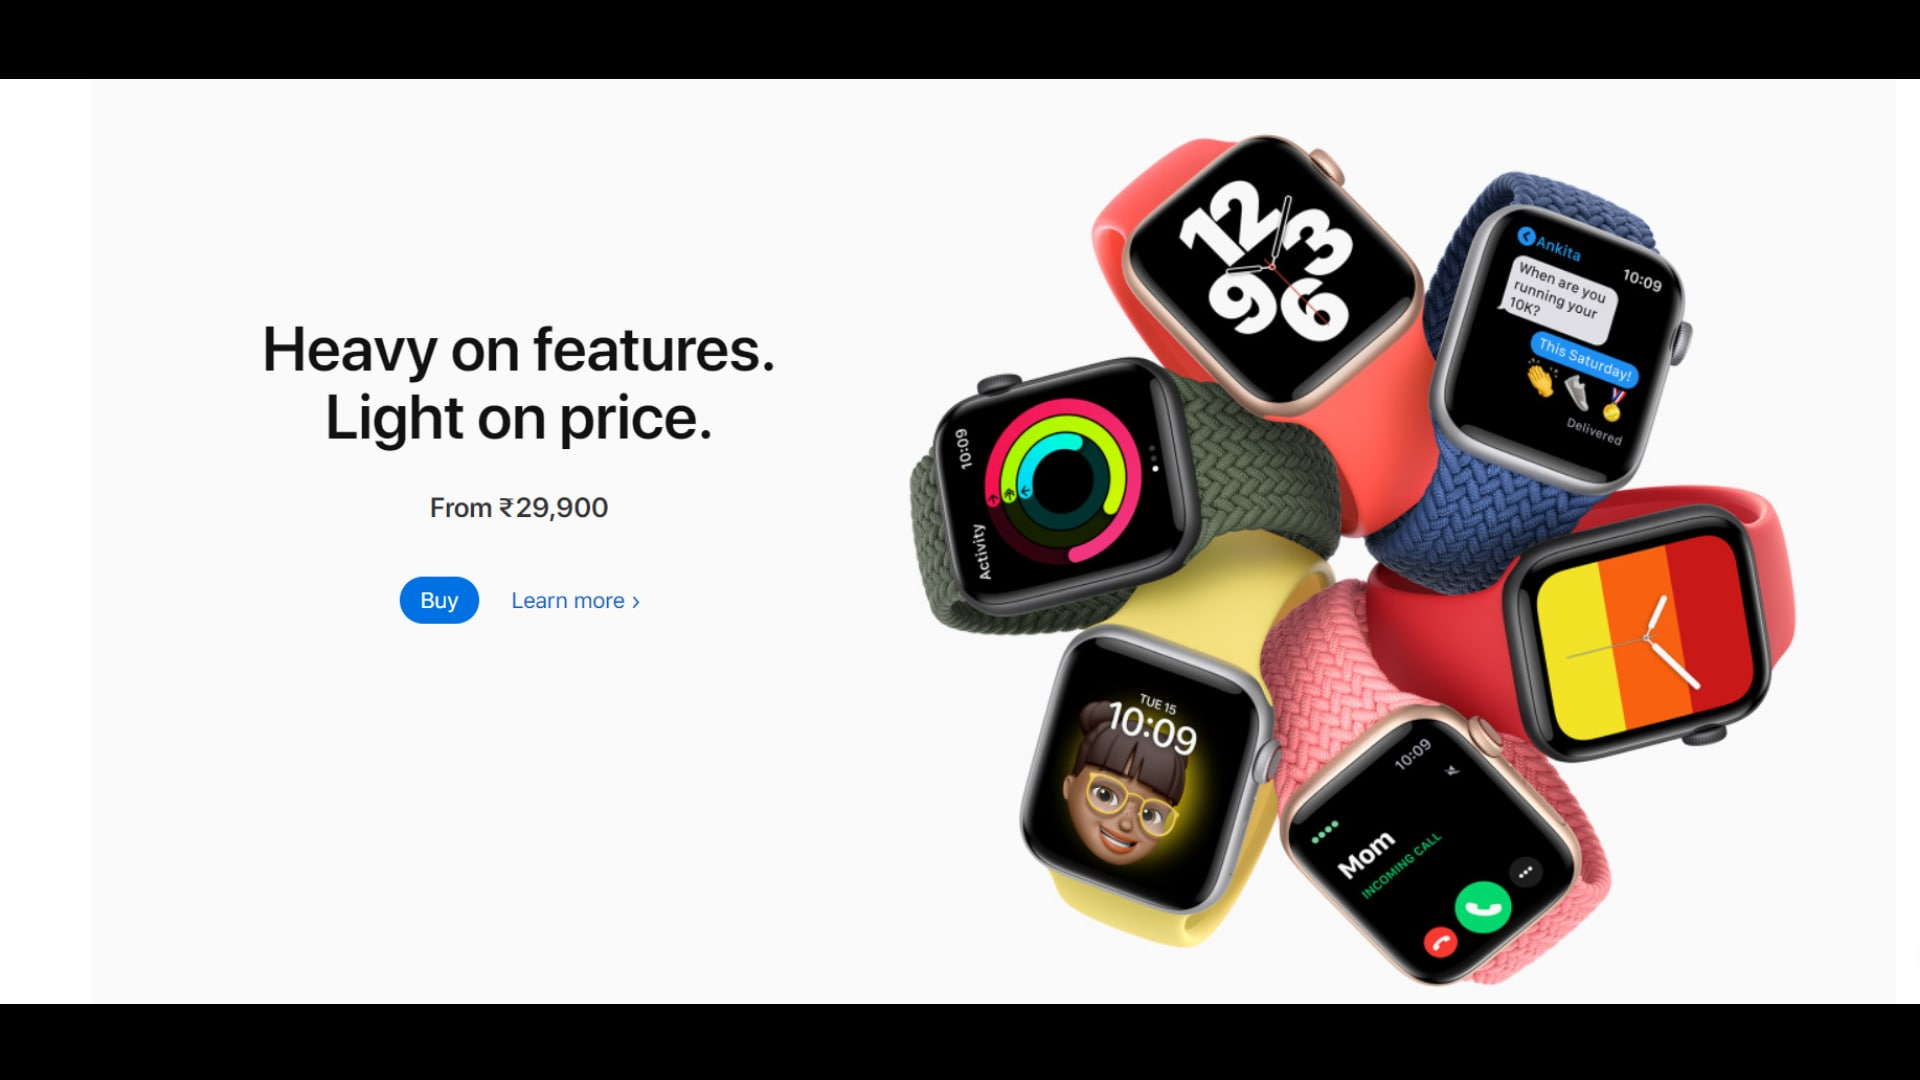 You can order both the Apple Watch 6 and the Apple Watch SE right now online along with your choice of bands and the AppleCare+ package and the wearables will be shipped to you between October 1 and October 5.